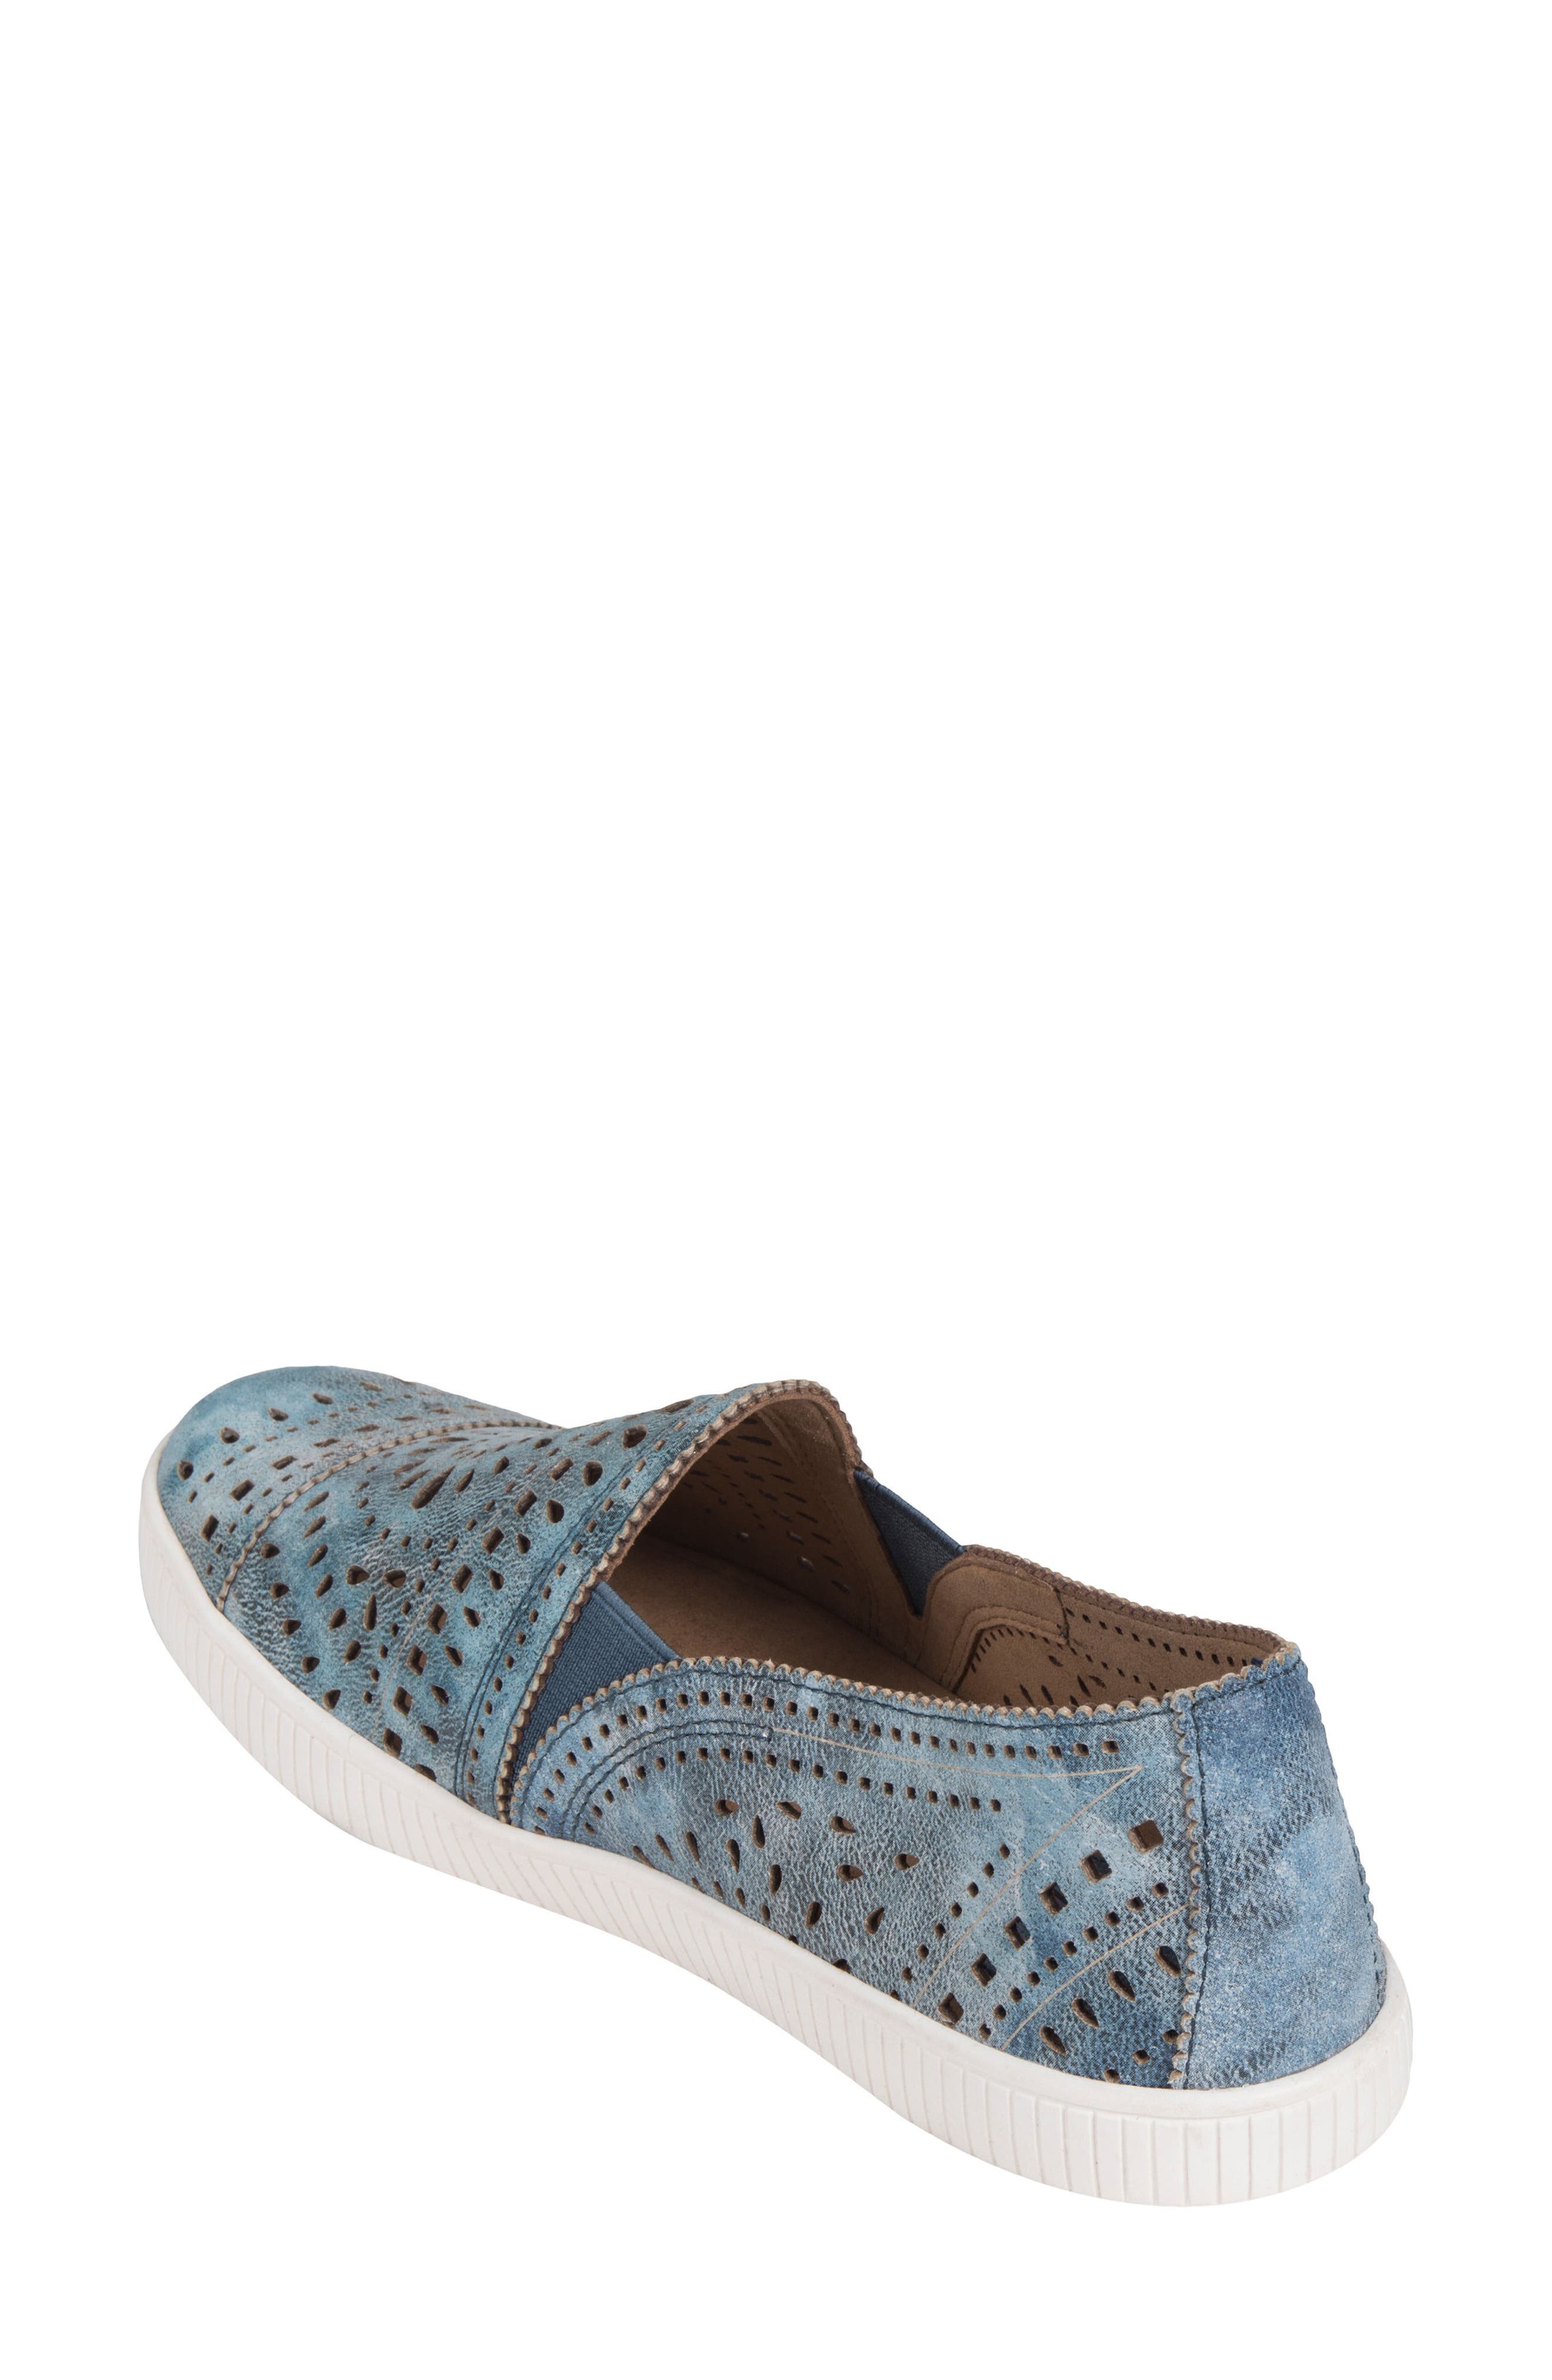 Tayberry Perforated Slip-On Sneaker,                             Alternate thumbnail 7, color,